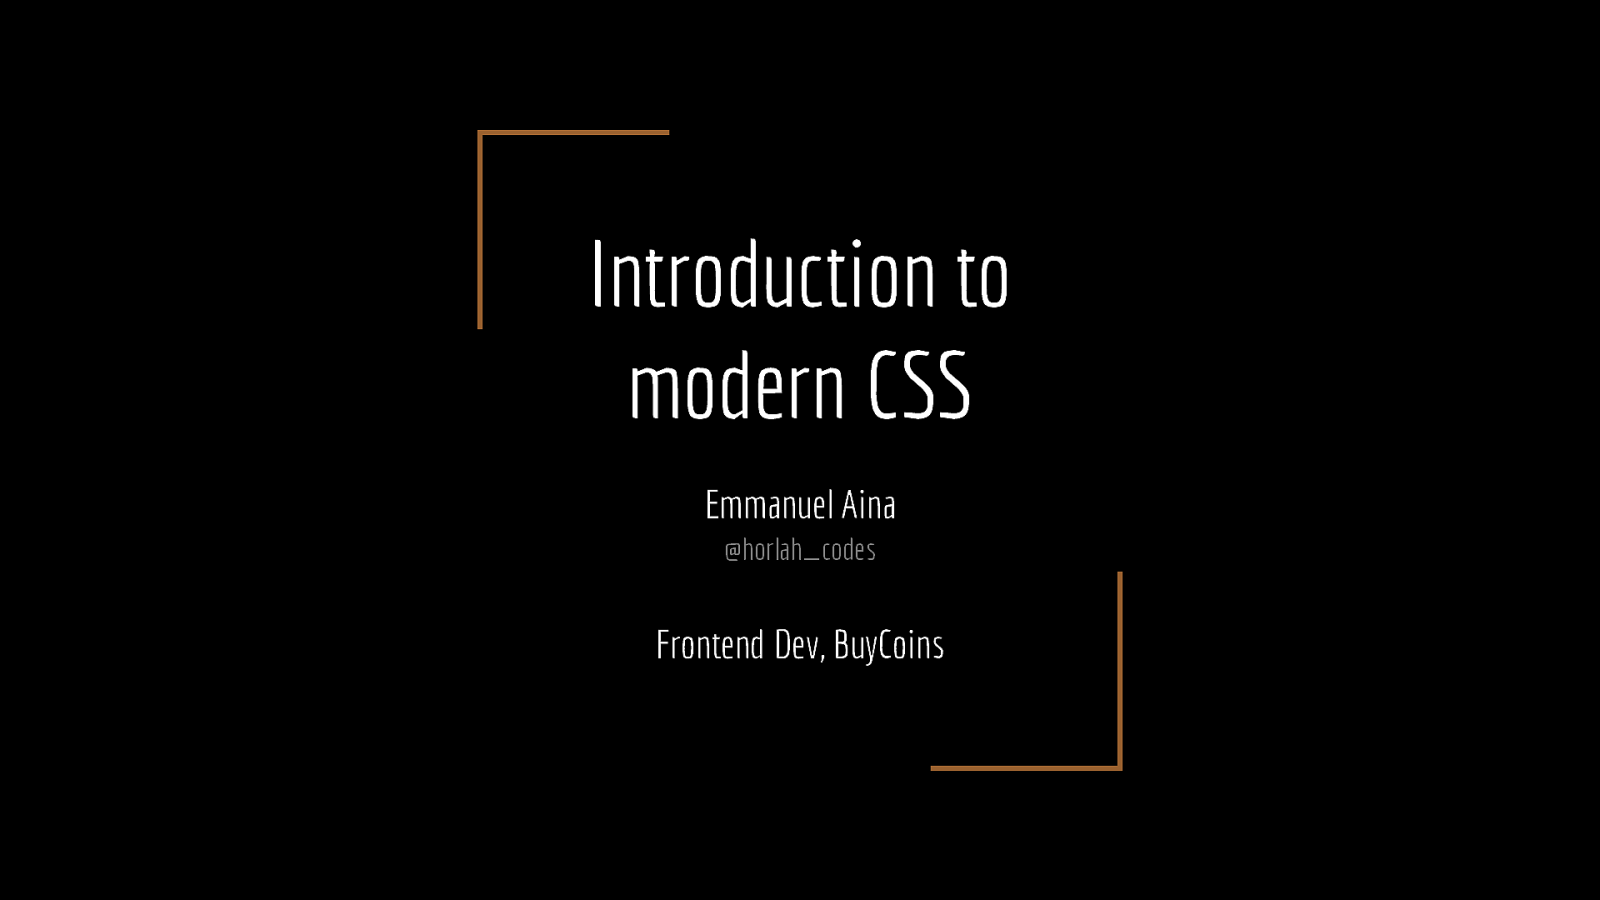 Introduction to Modern CSS